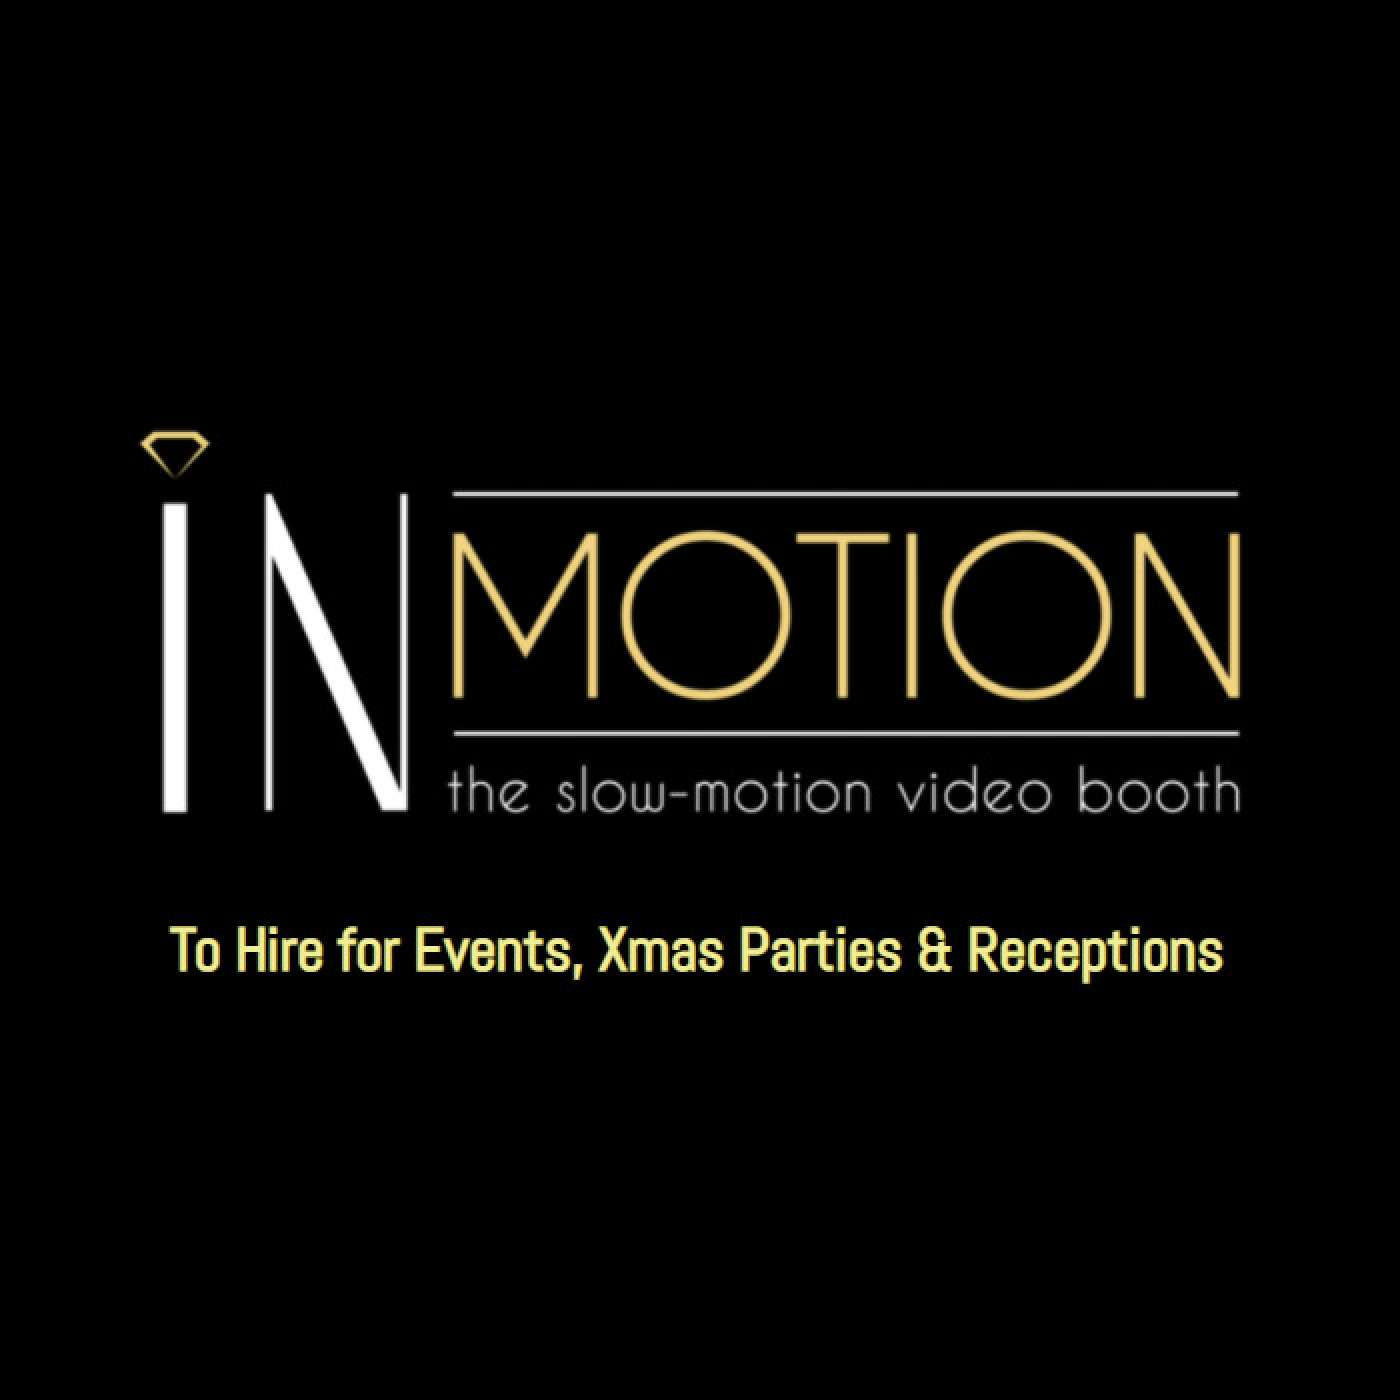 'The InMotion Booth' - To Hire for Events, Xmas Parties & Receptions